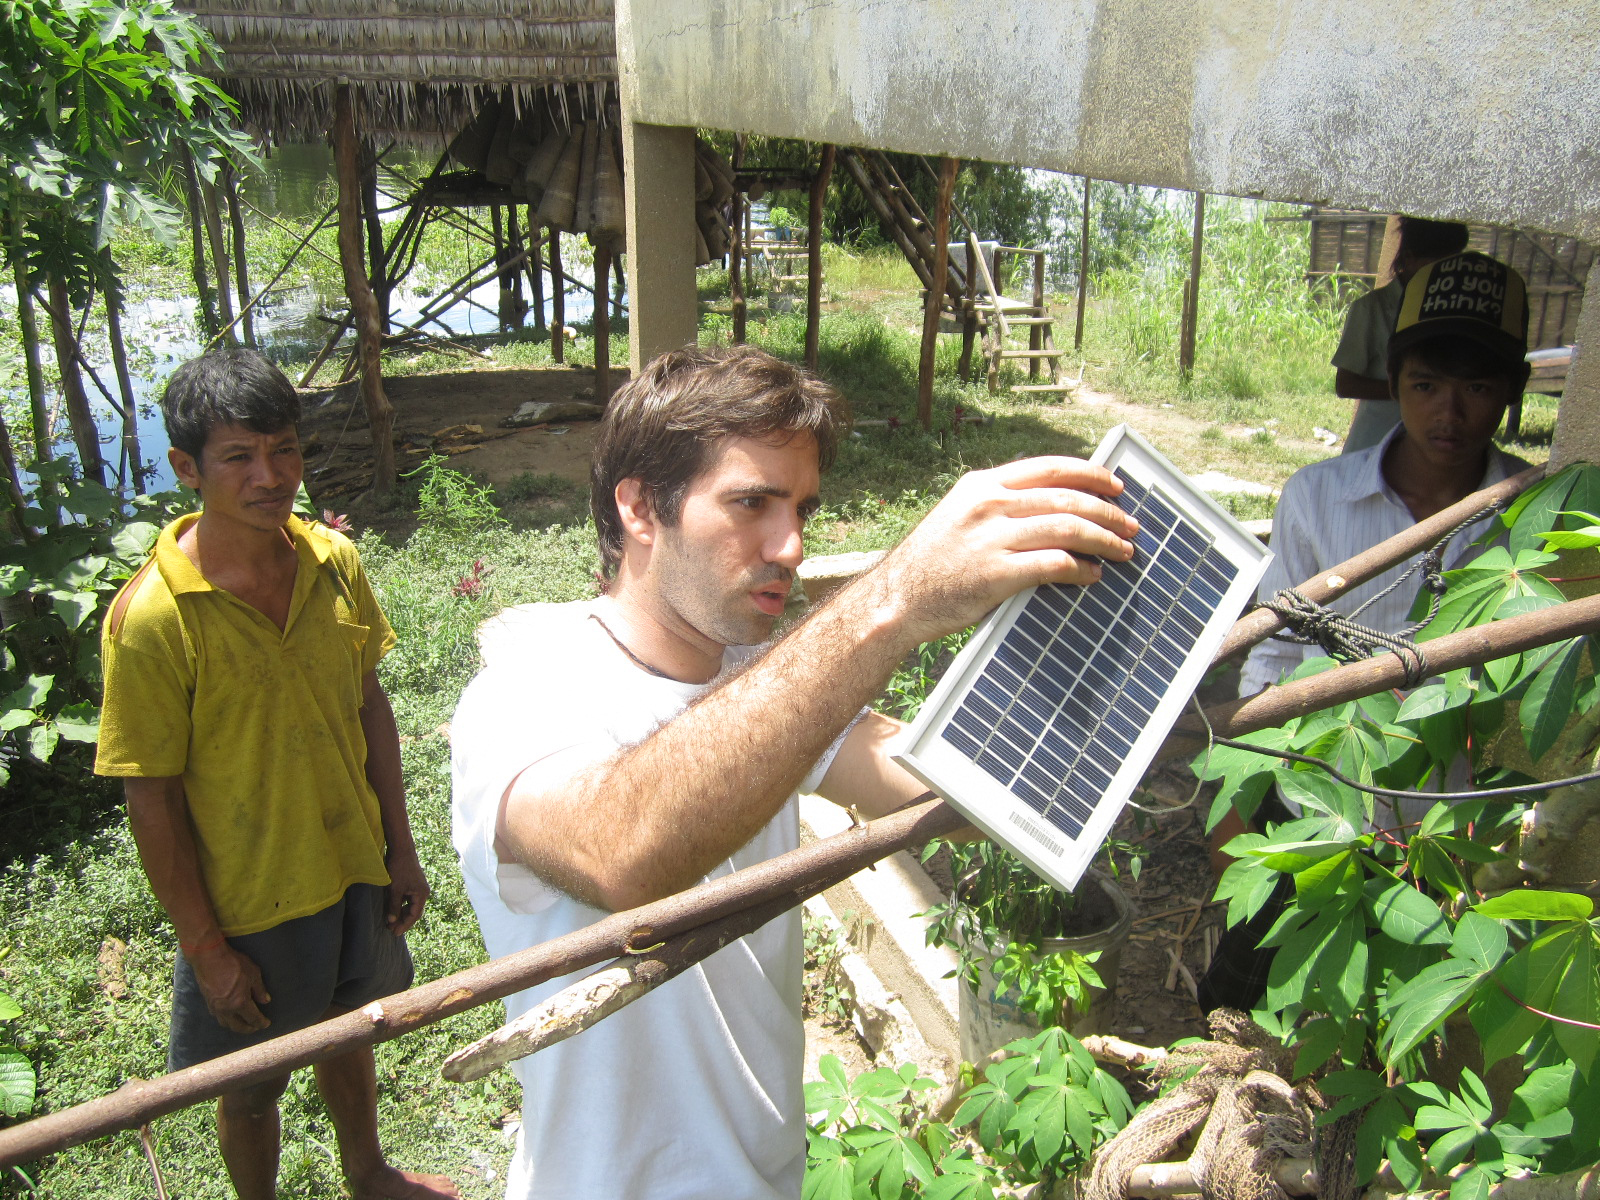 Daniel Pacheco '07 installs a temporary solar frame for a family whose housesank in heavy rain.